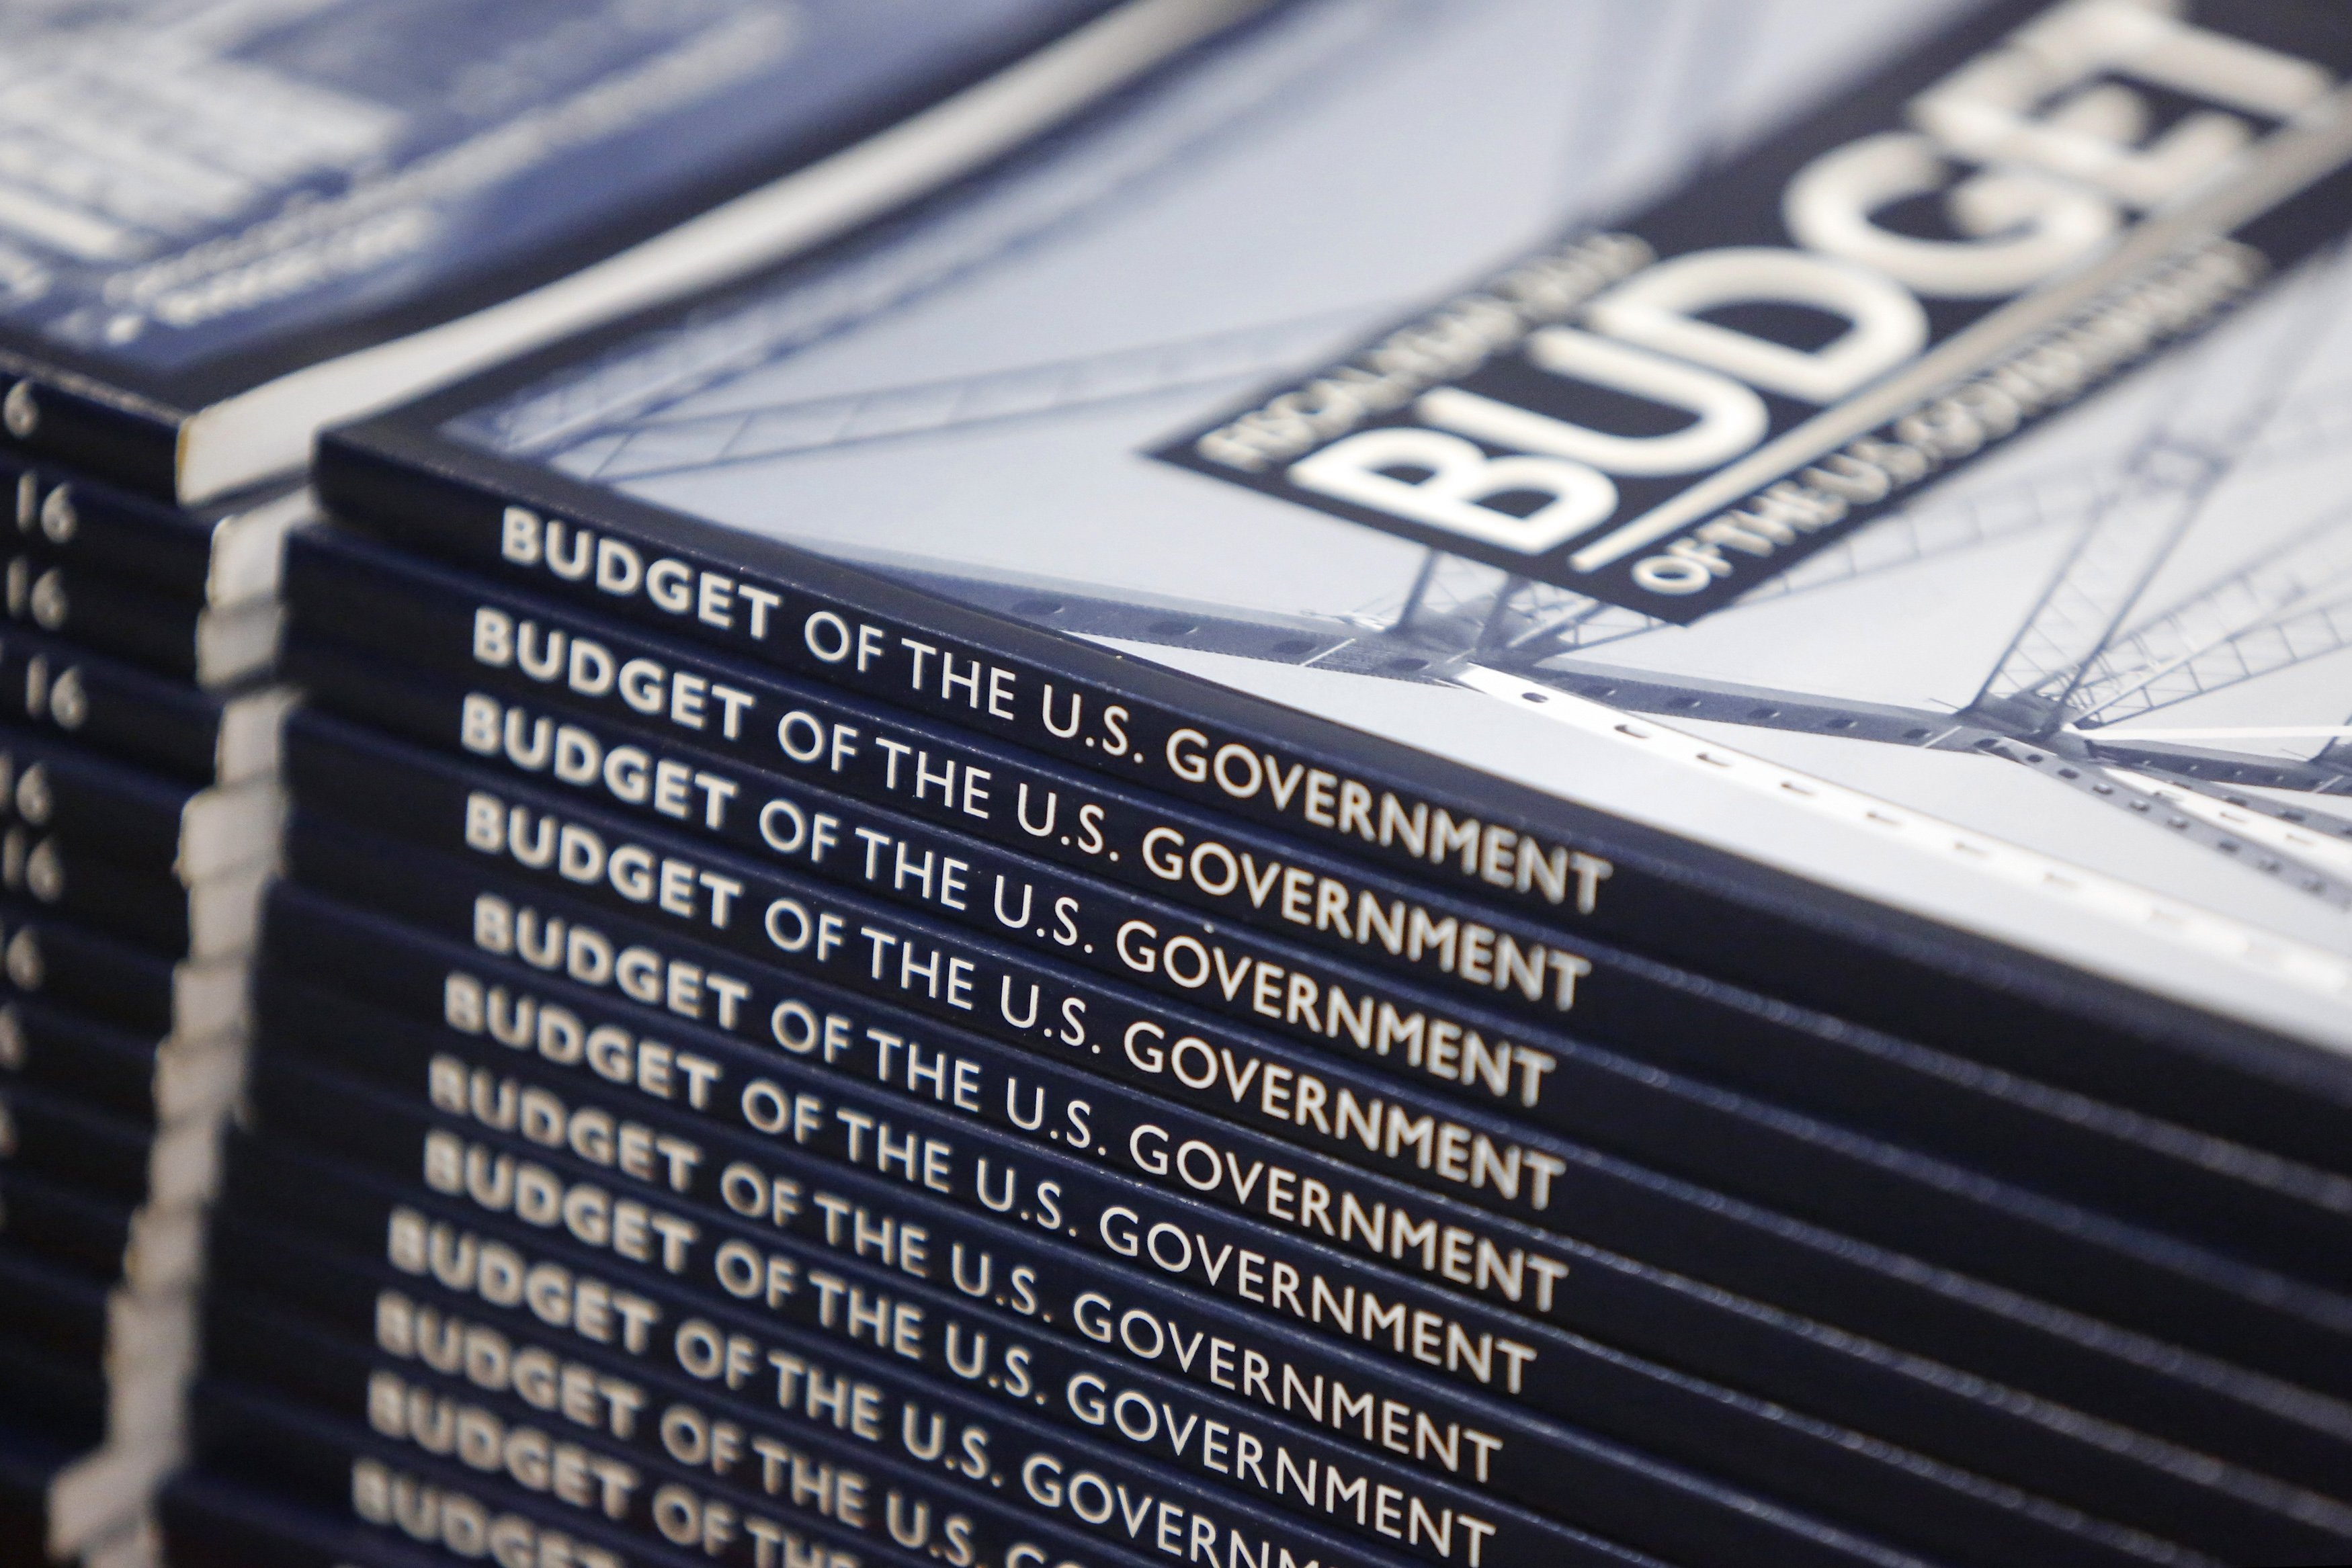 Copies of the US Federal Budget